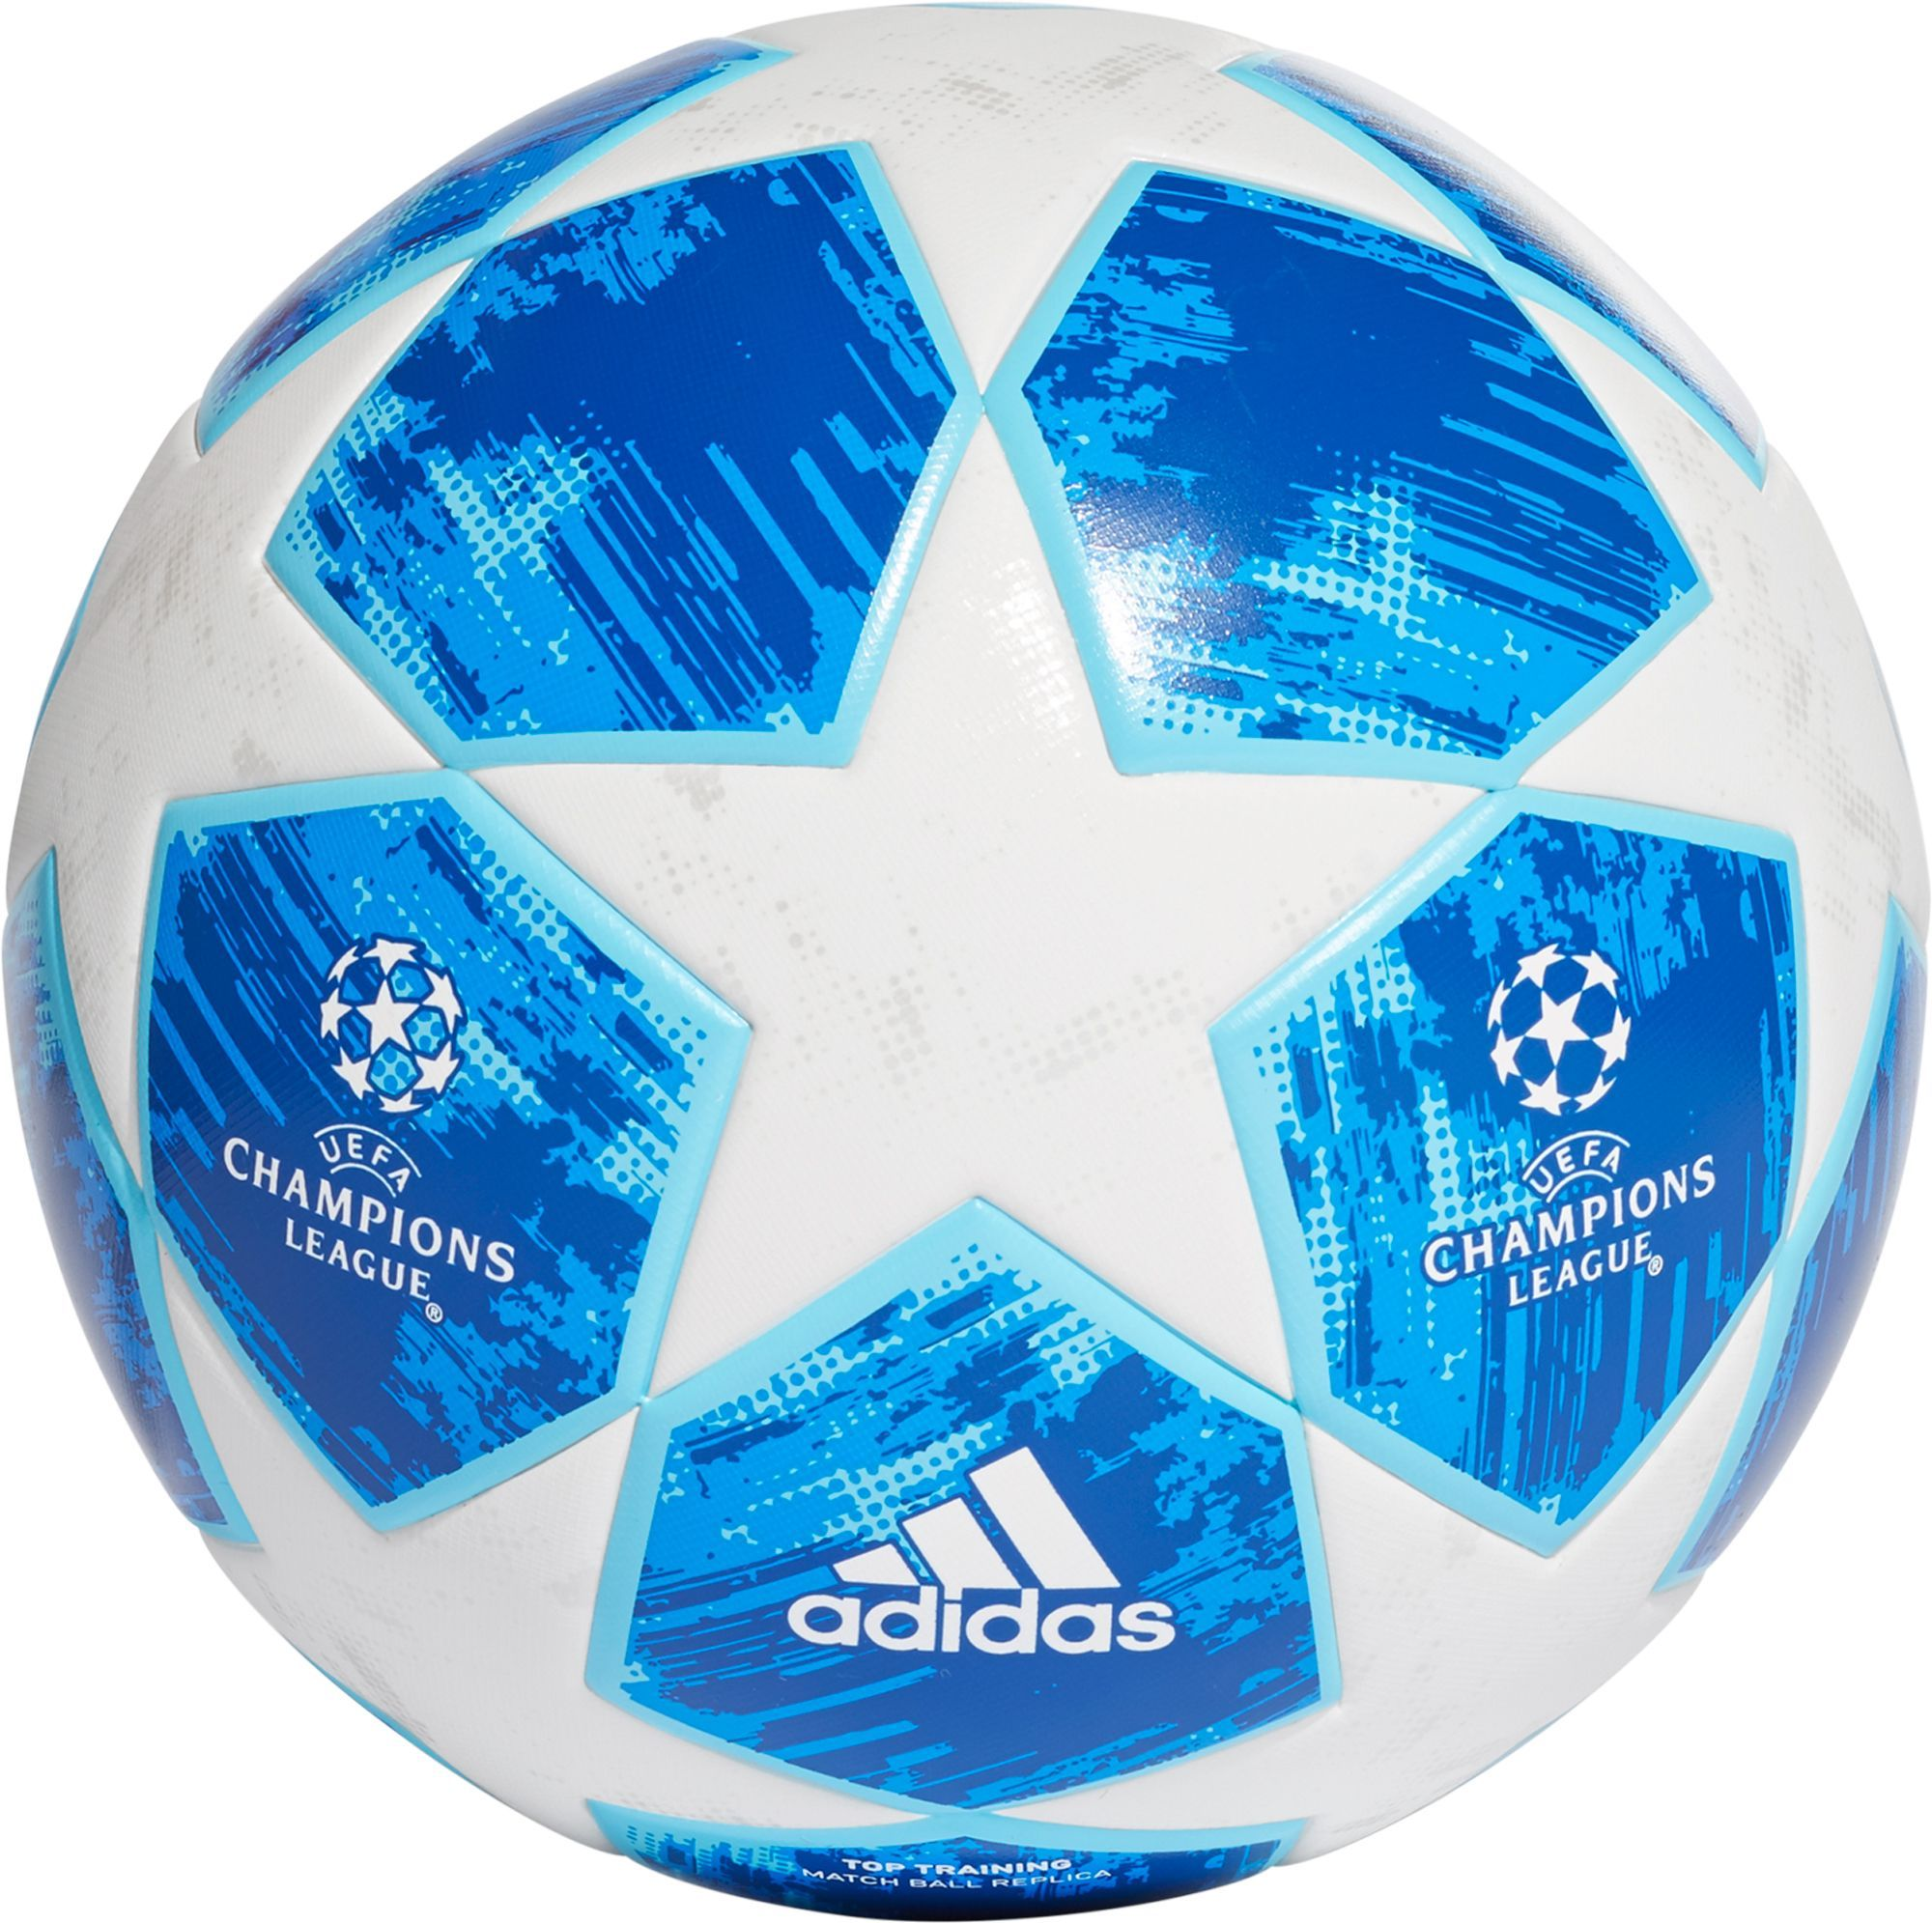 c471a93c3df adidas 2018 UEFA Champions League Finale Top Training Soccer Ball ...